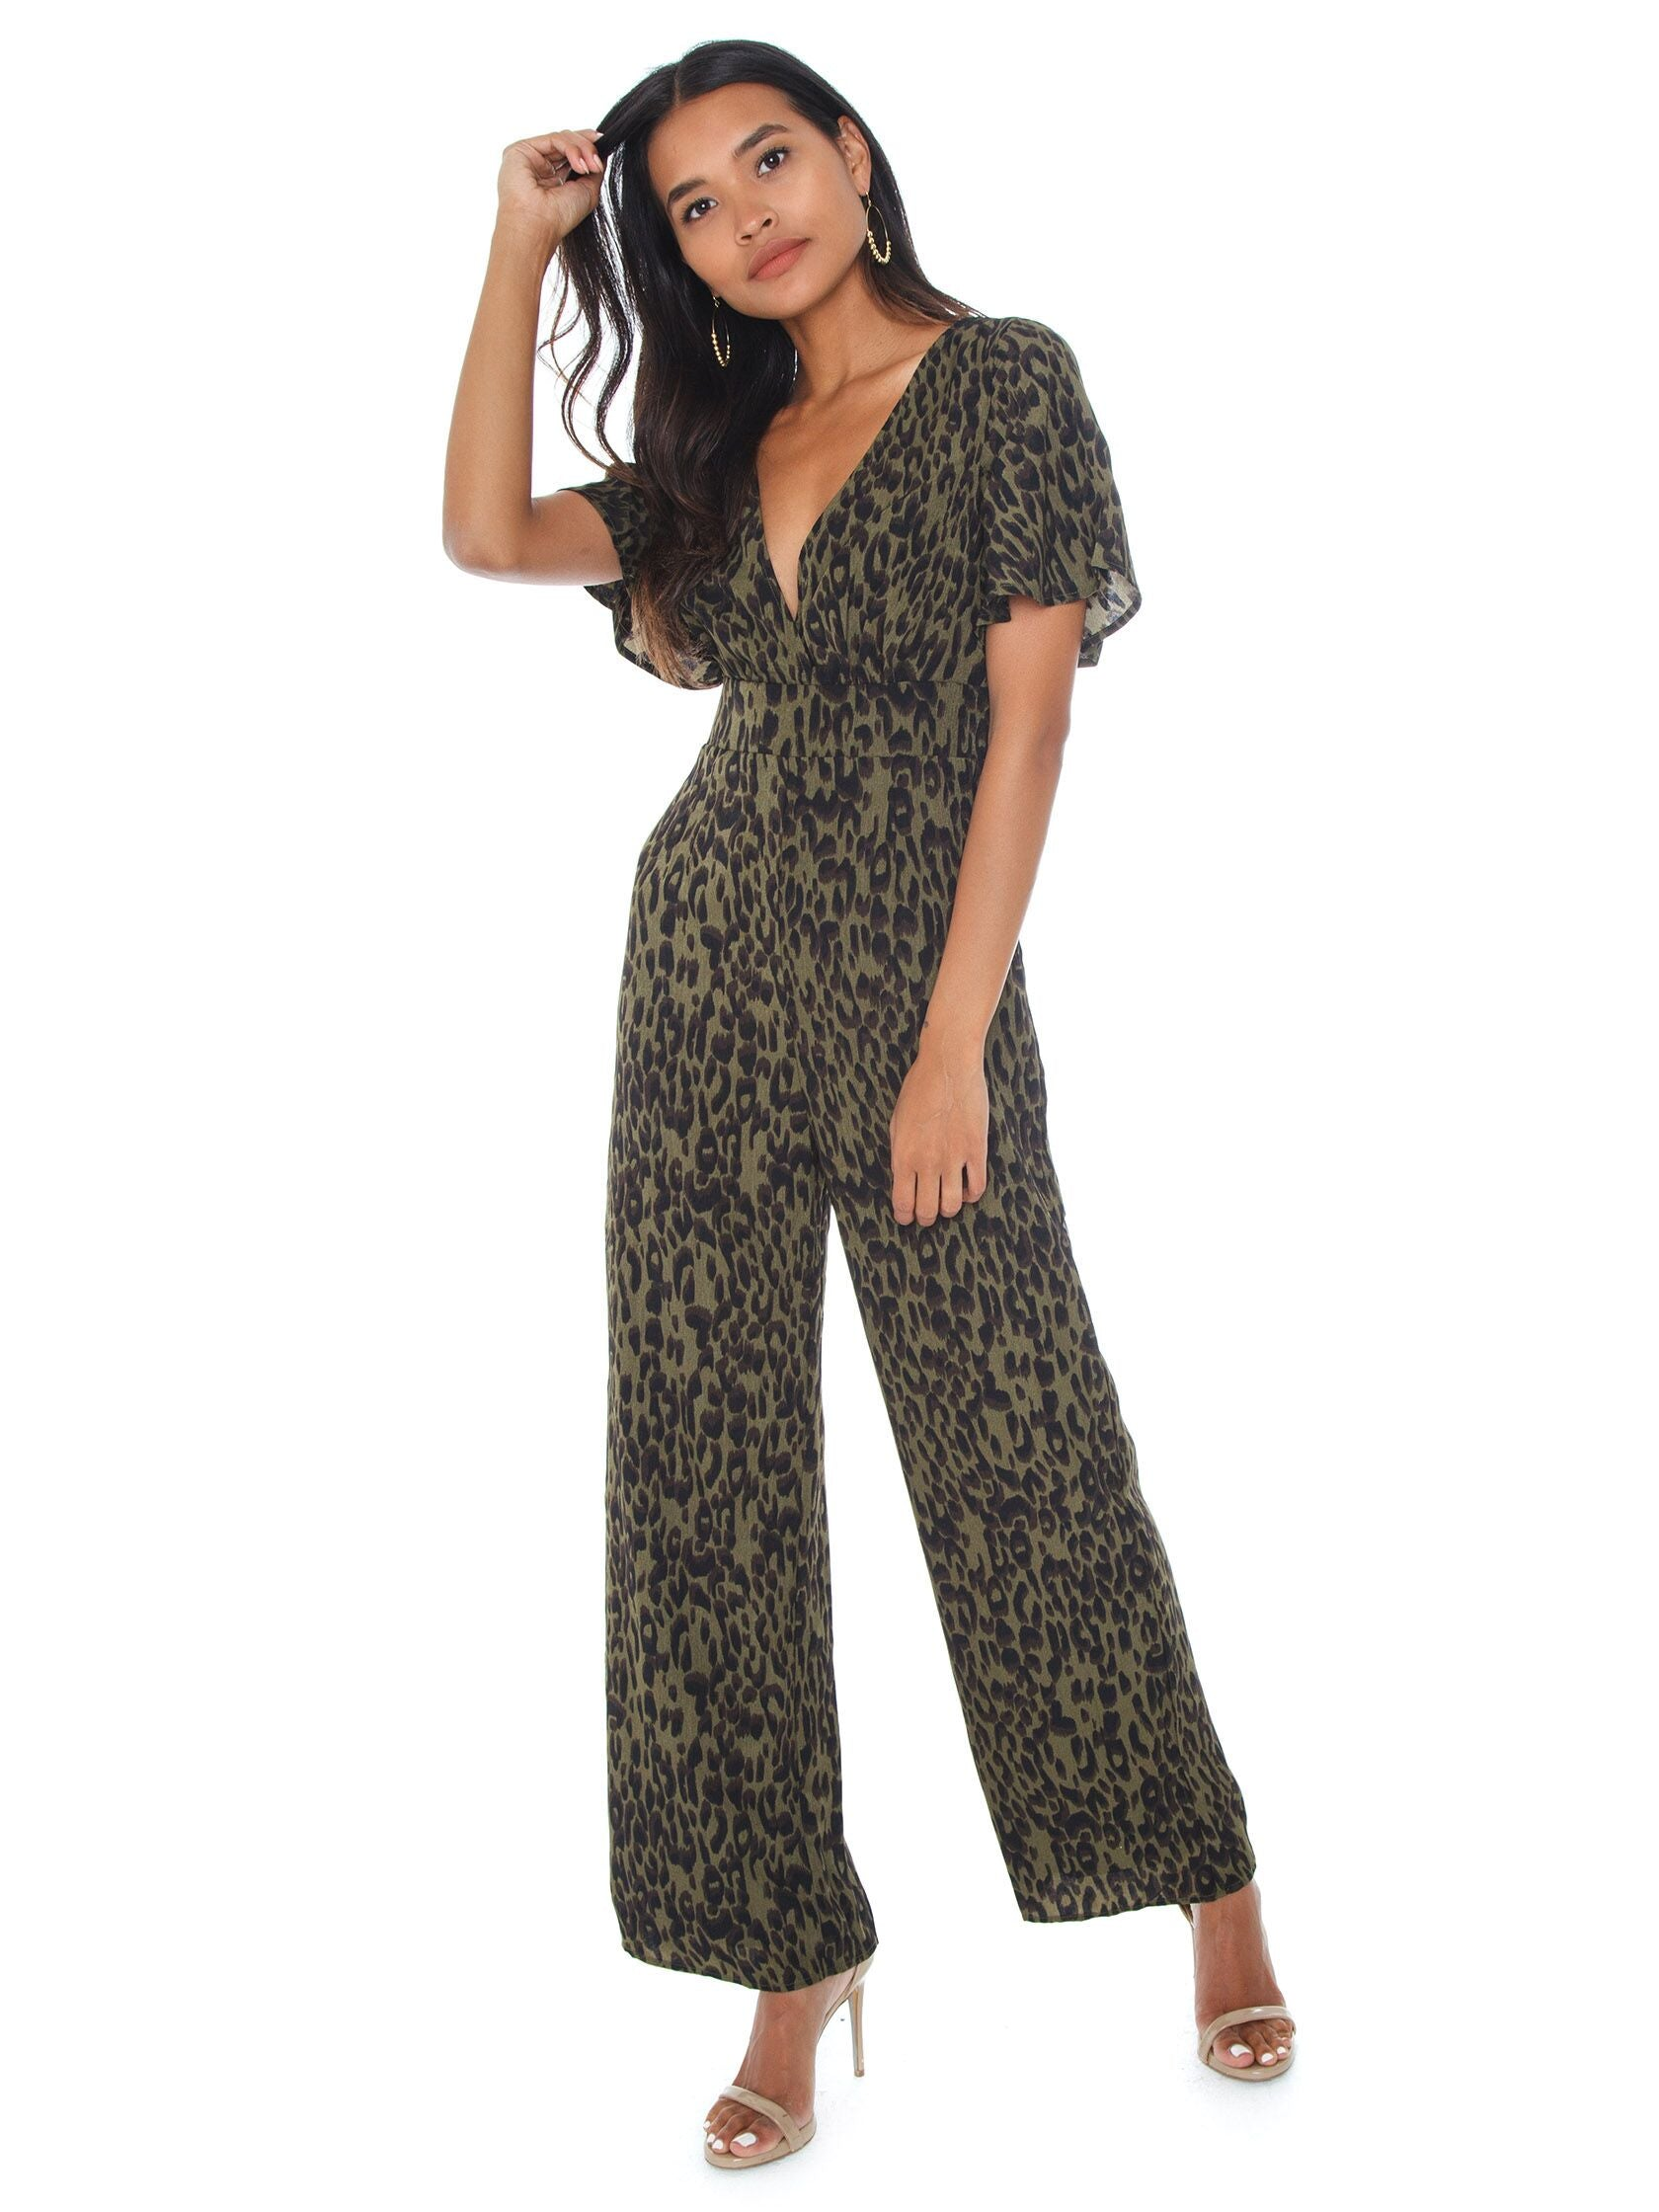 Girl outfit in a jumpsuit rental from Lost In Lunar called Callie Pantsuit